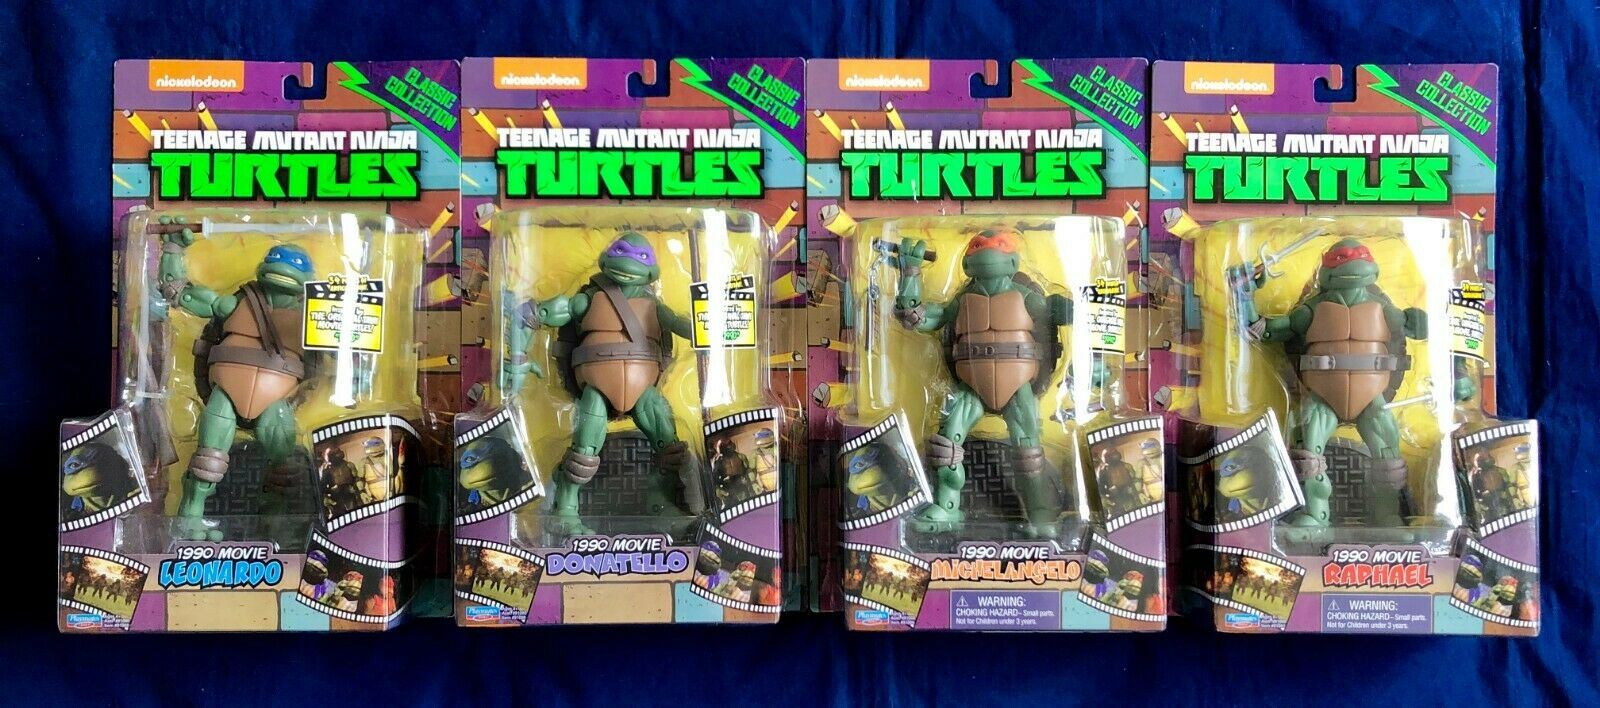 Teenage Mutant Ninja Turtles 1990 Movie 6  Classic Collection Set of 4 Figures